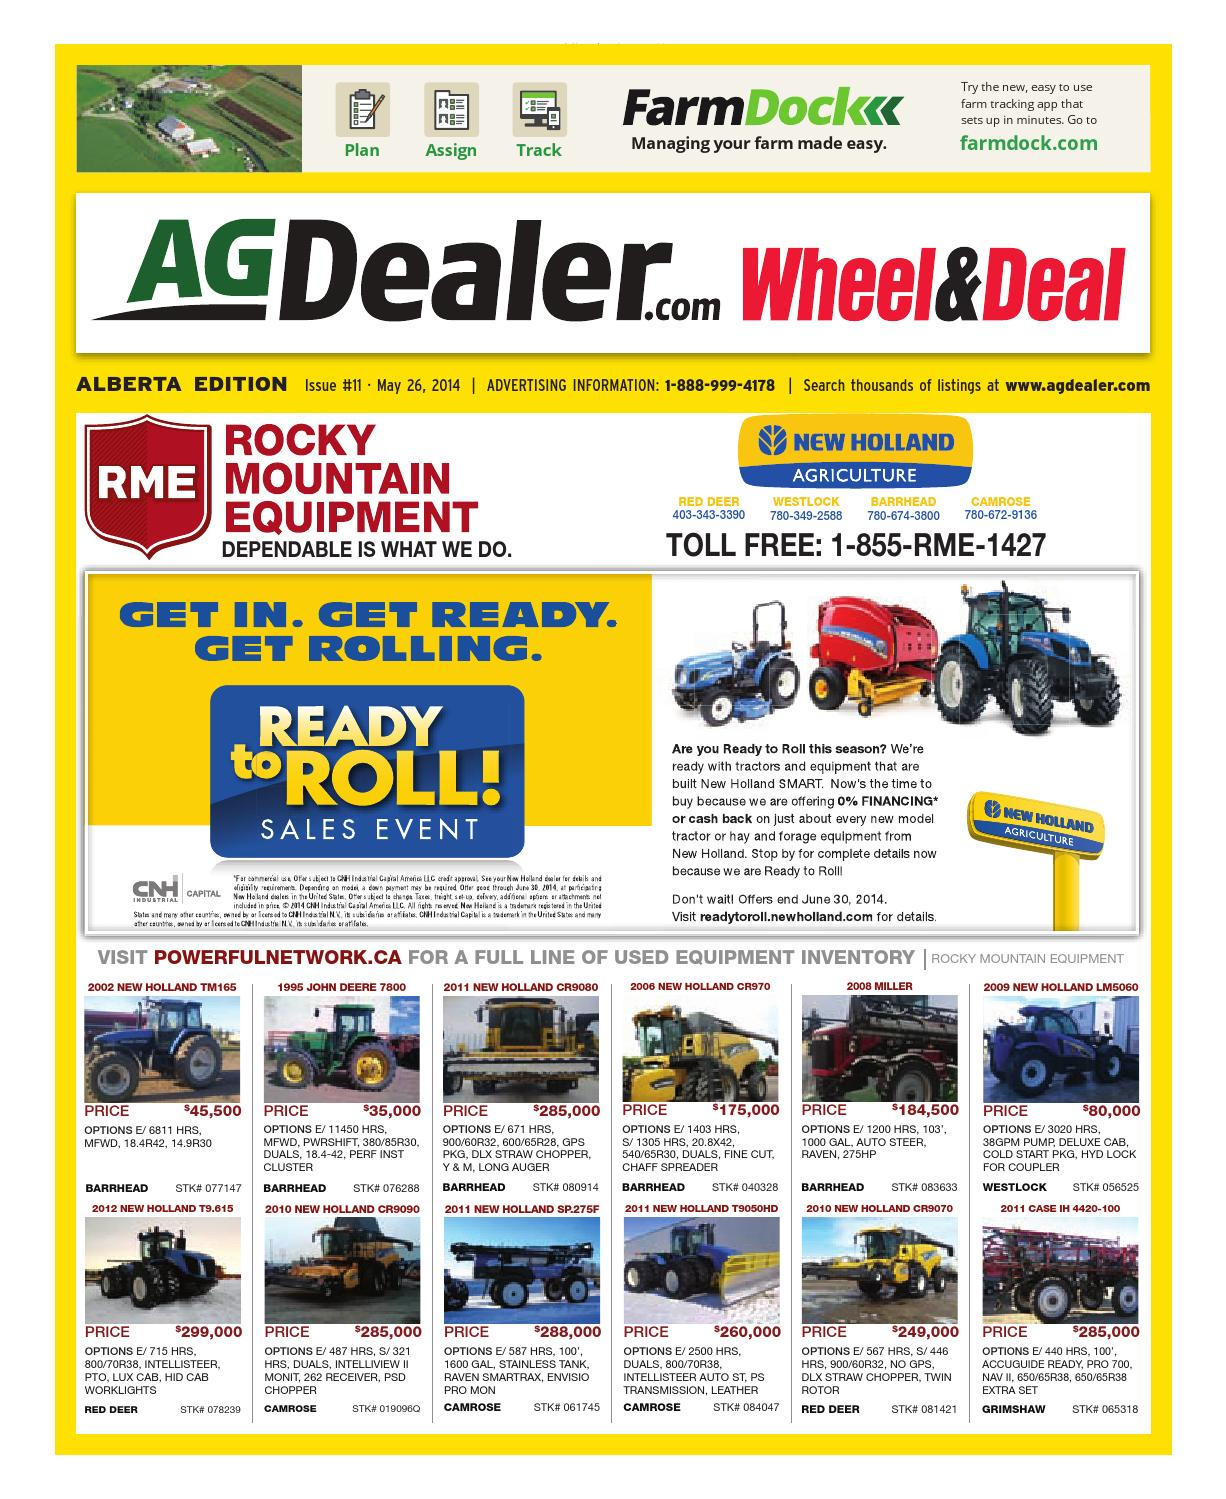 WRG-3209] New Holland 376 Hayliner Baler Owners Manual on